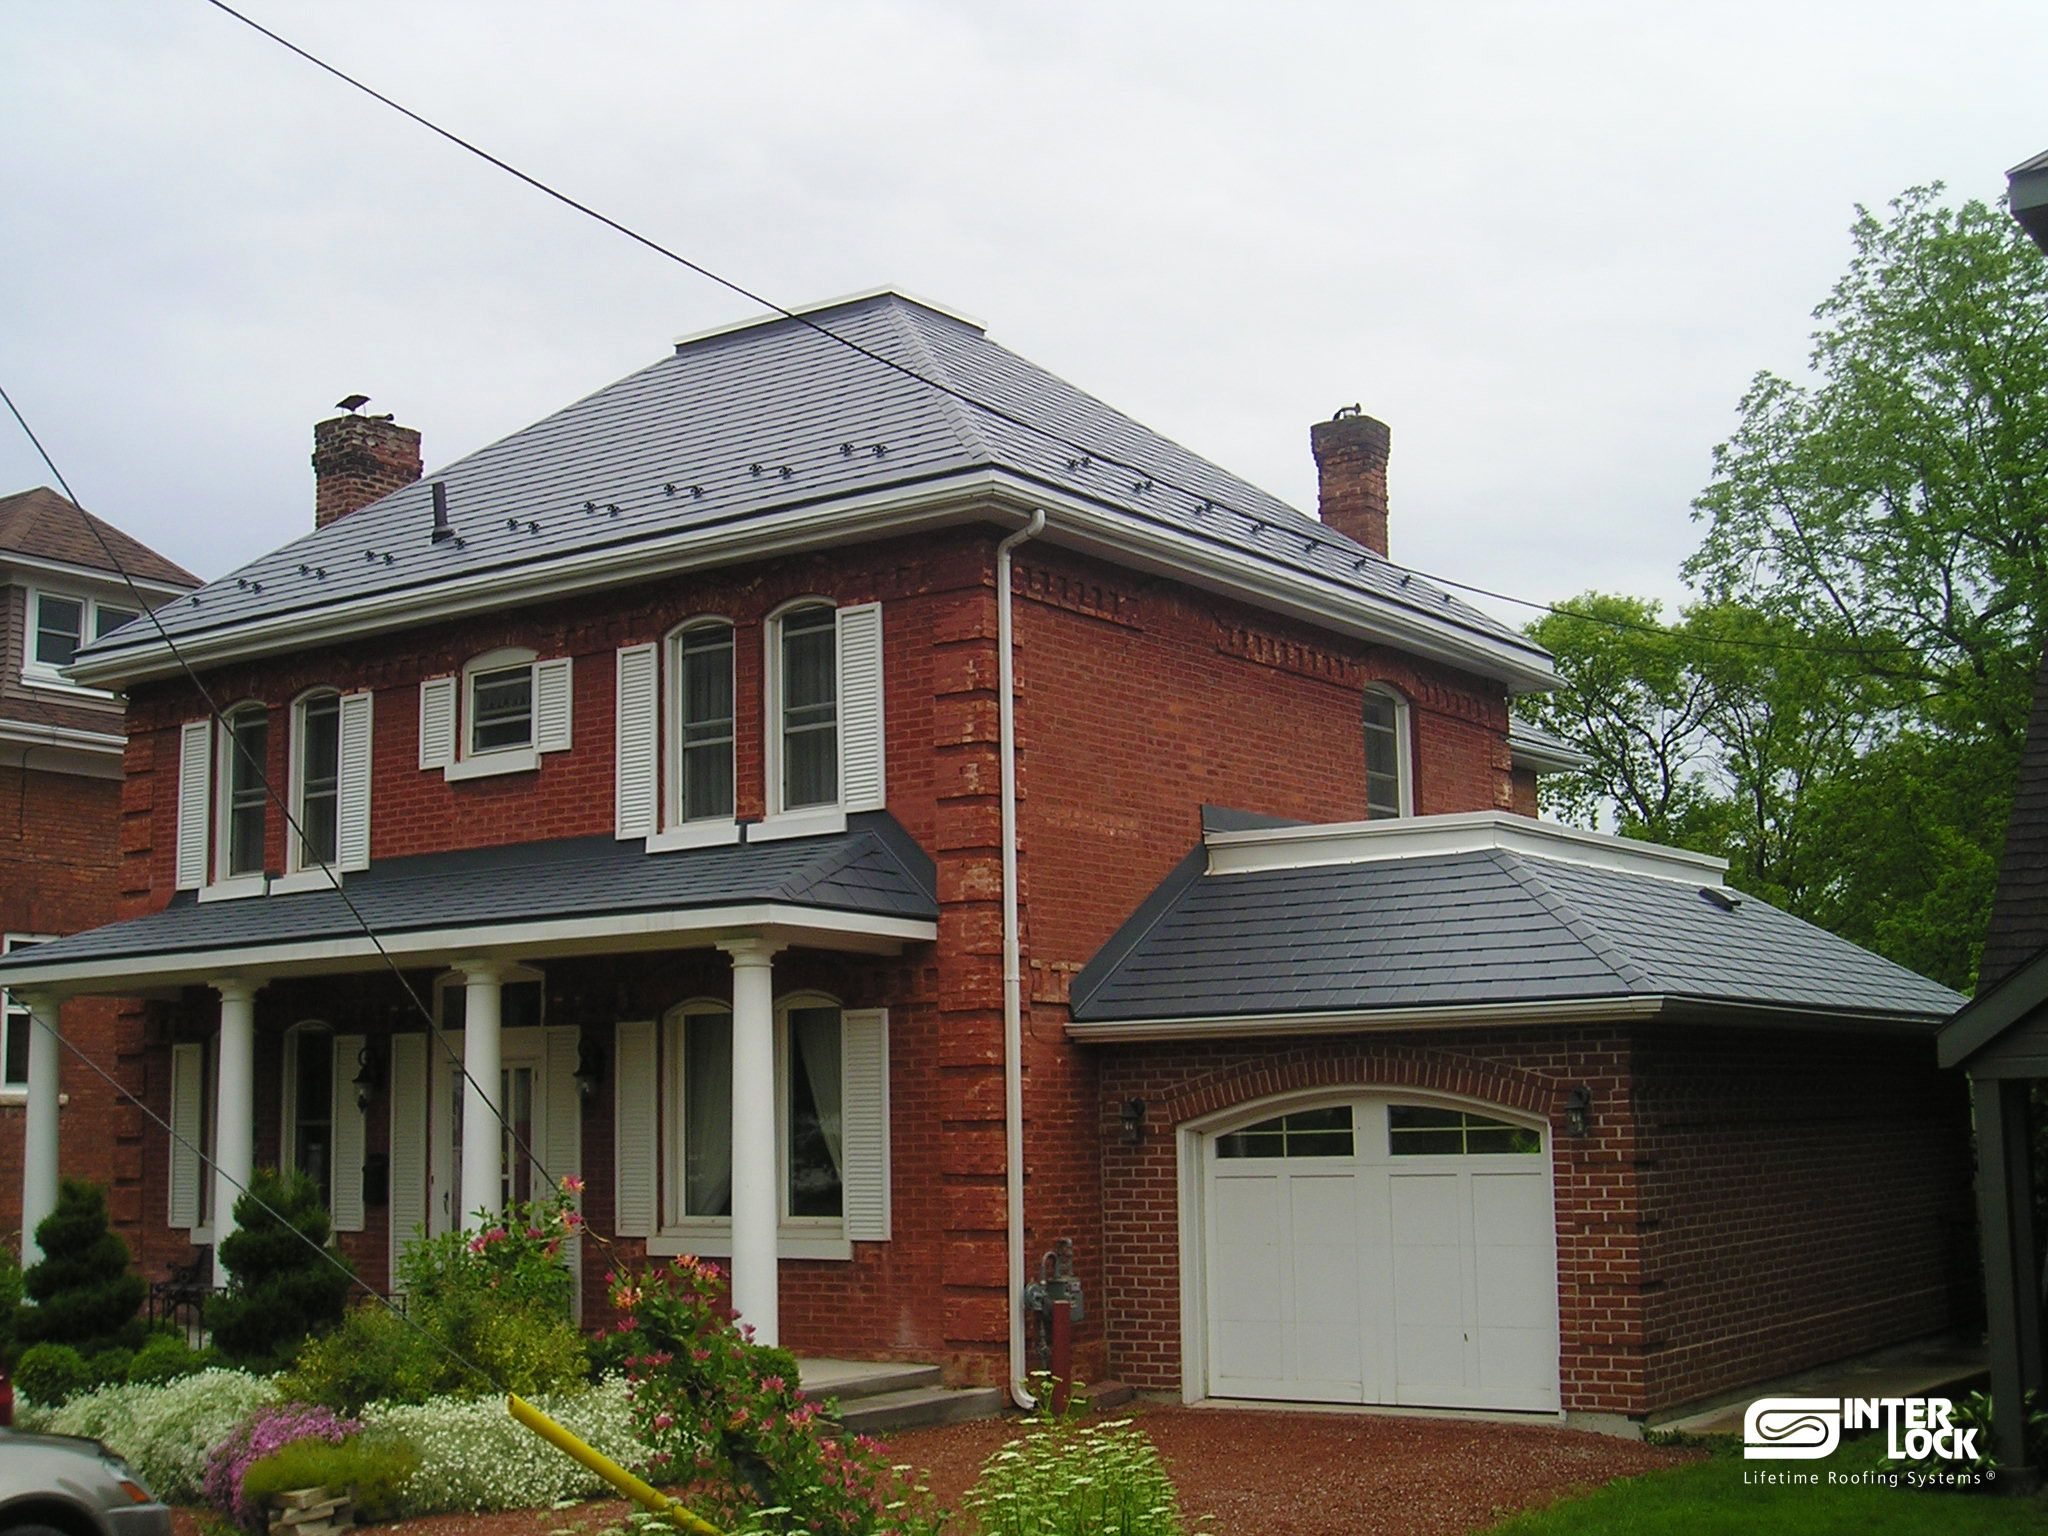 Brick house in nova scotia with a metal roof by interlock for Red brick house with metal roof